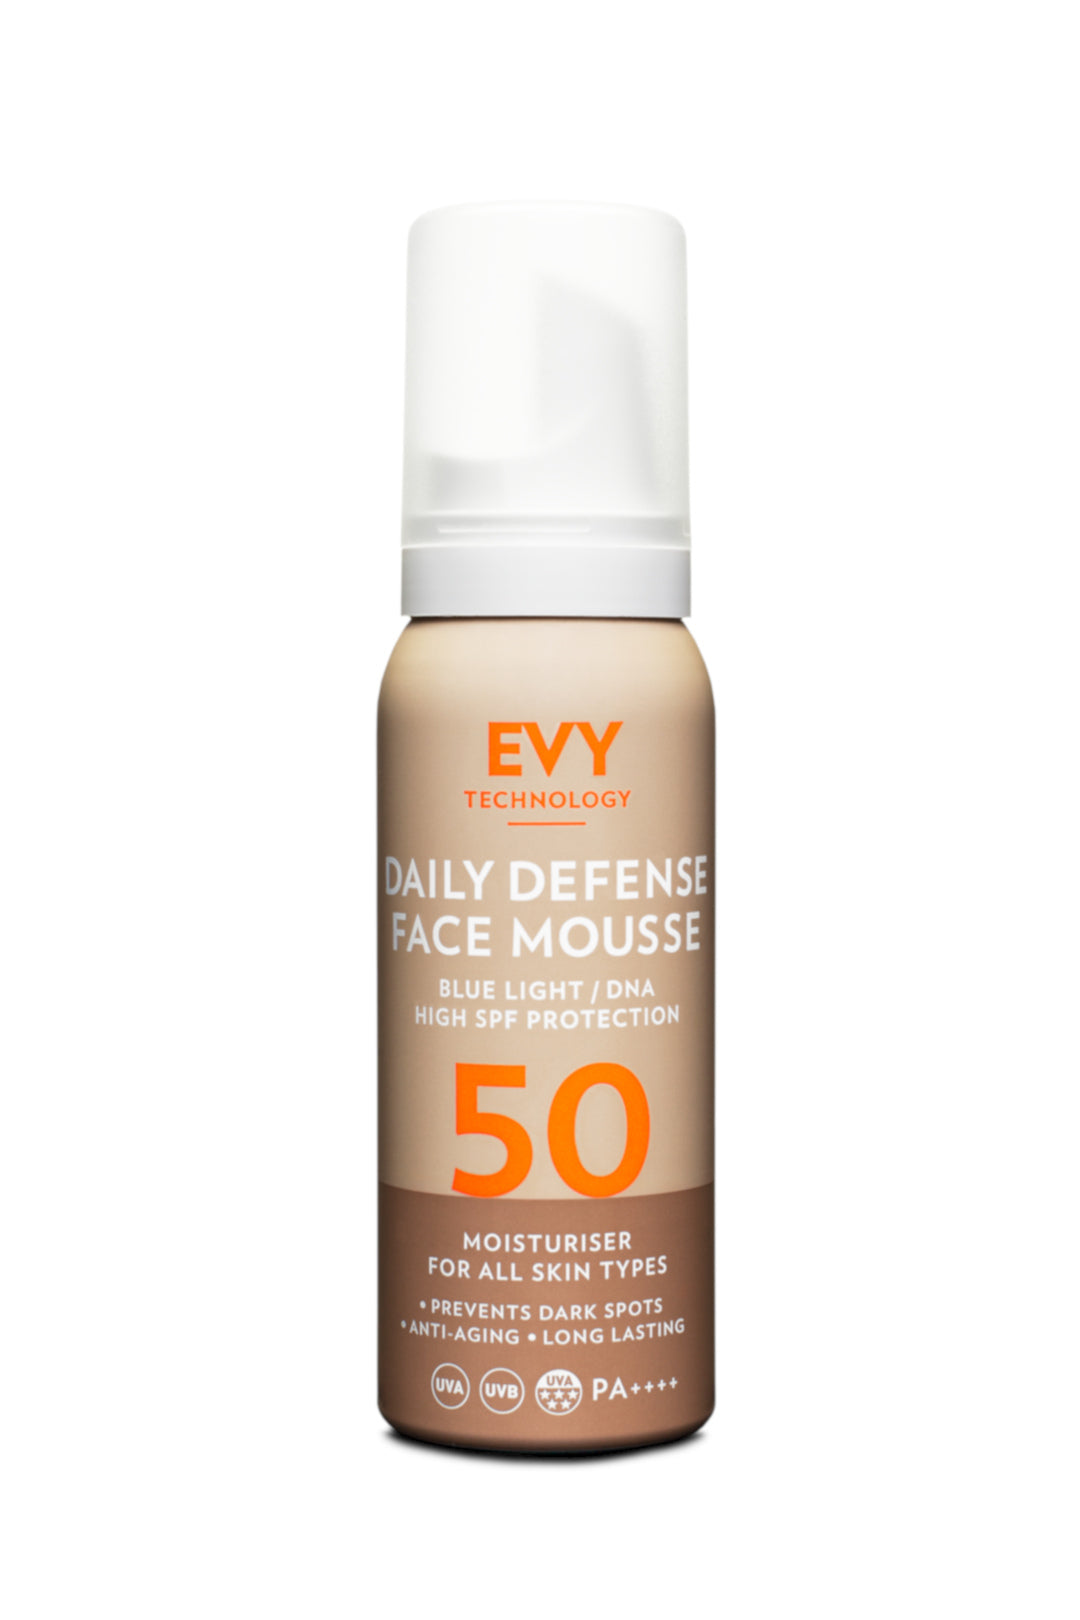 EVY daily defense face mousse SPF50 (75ml)